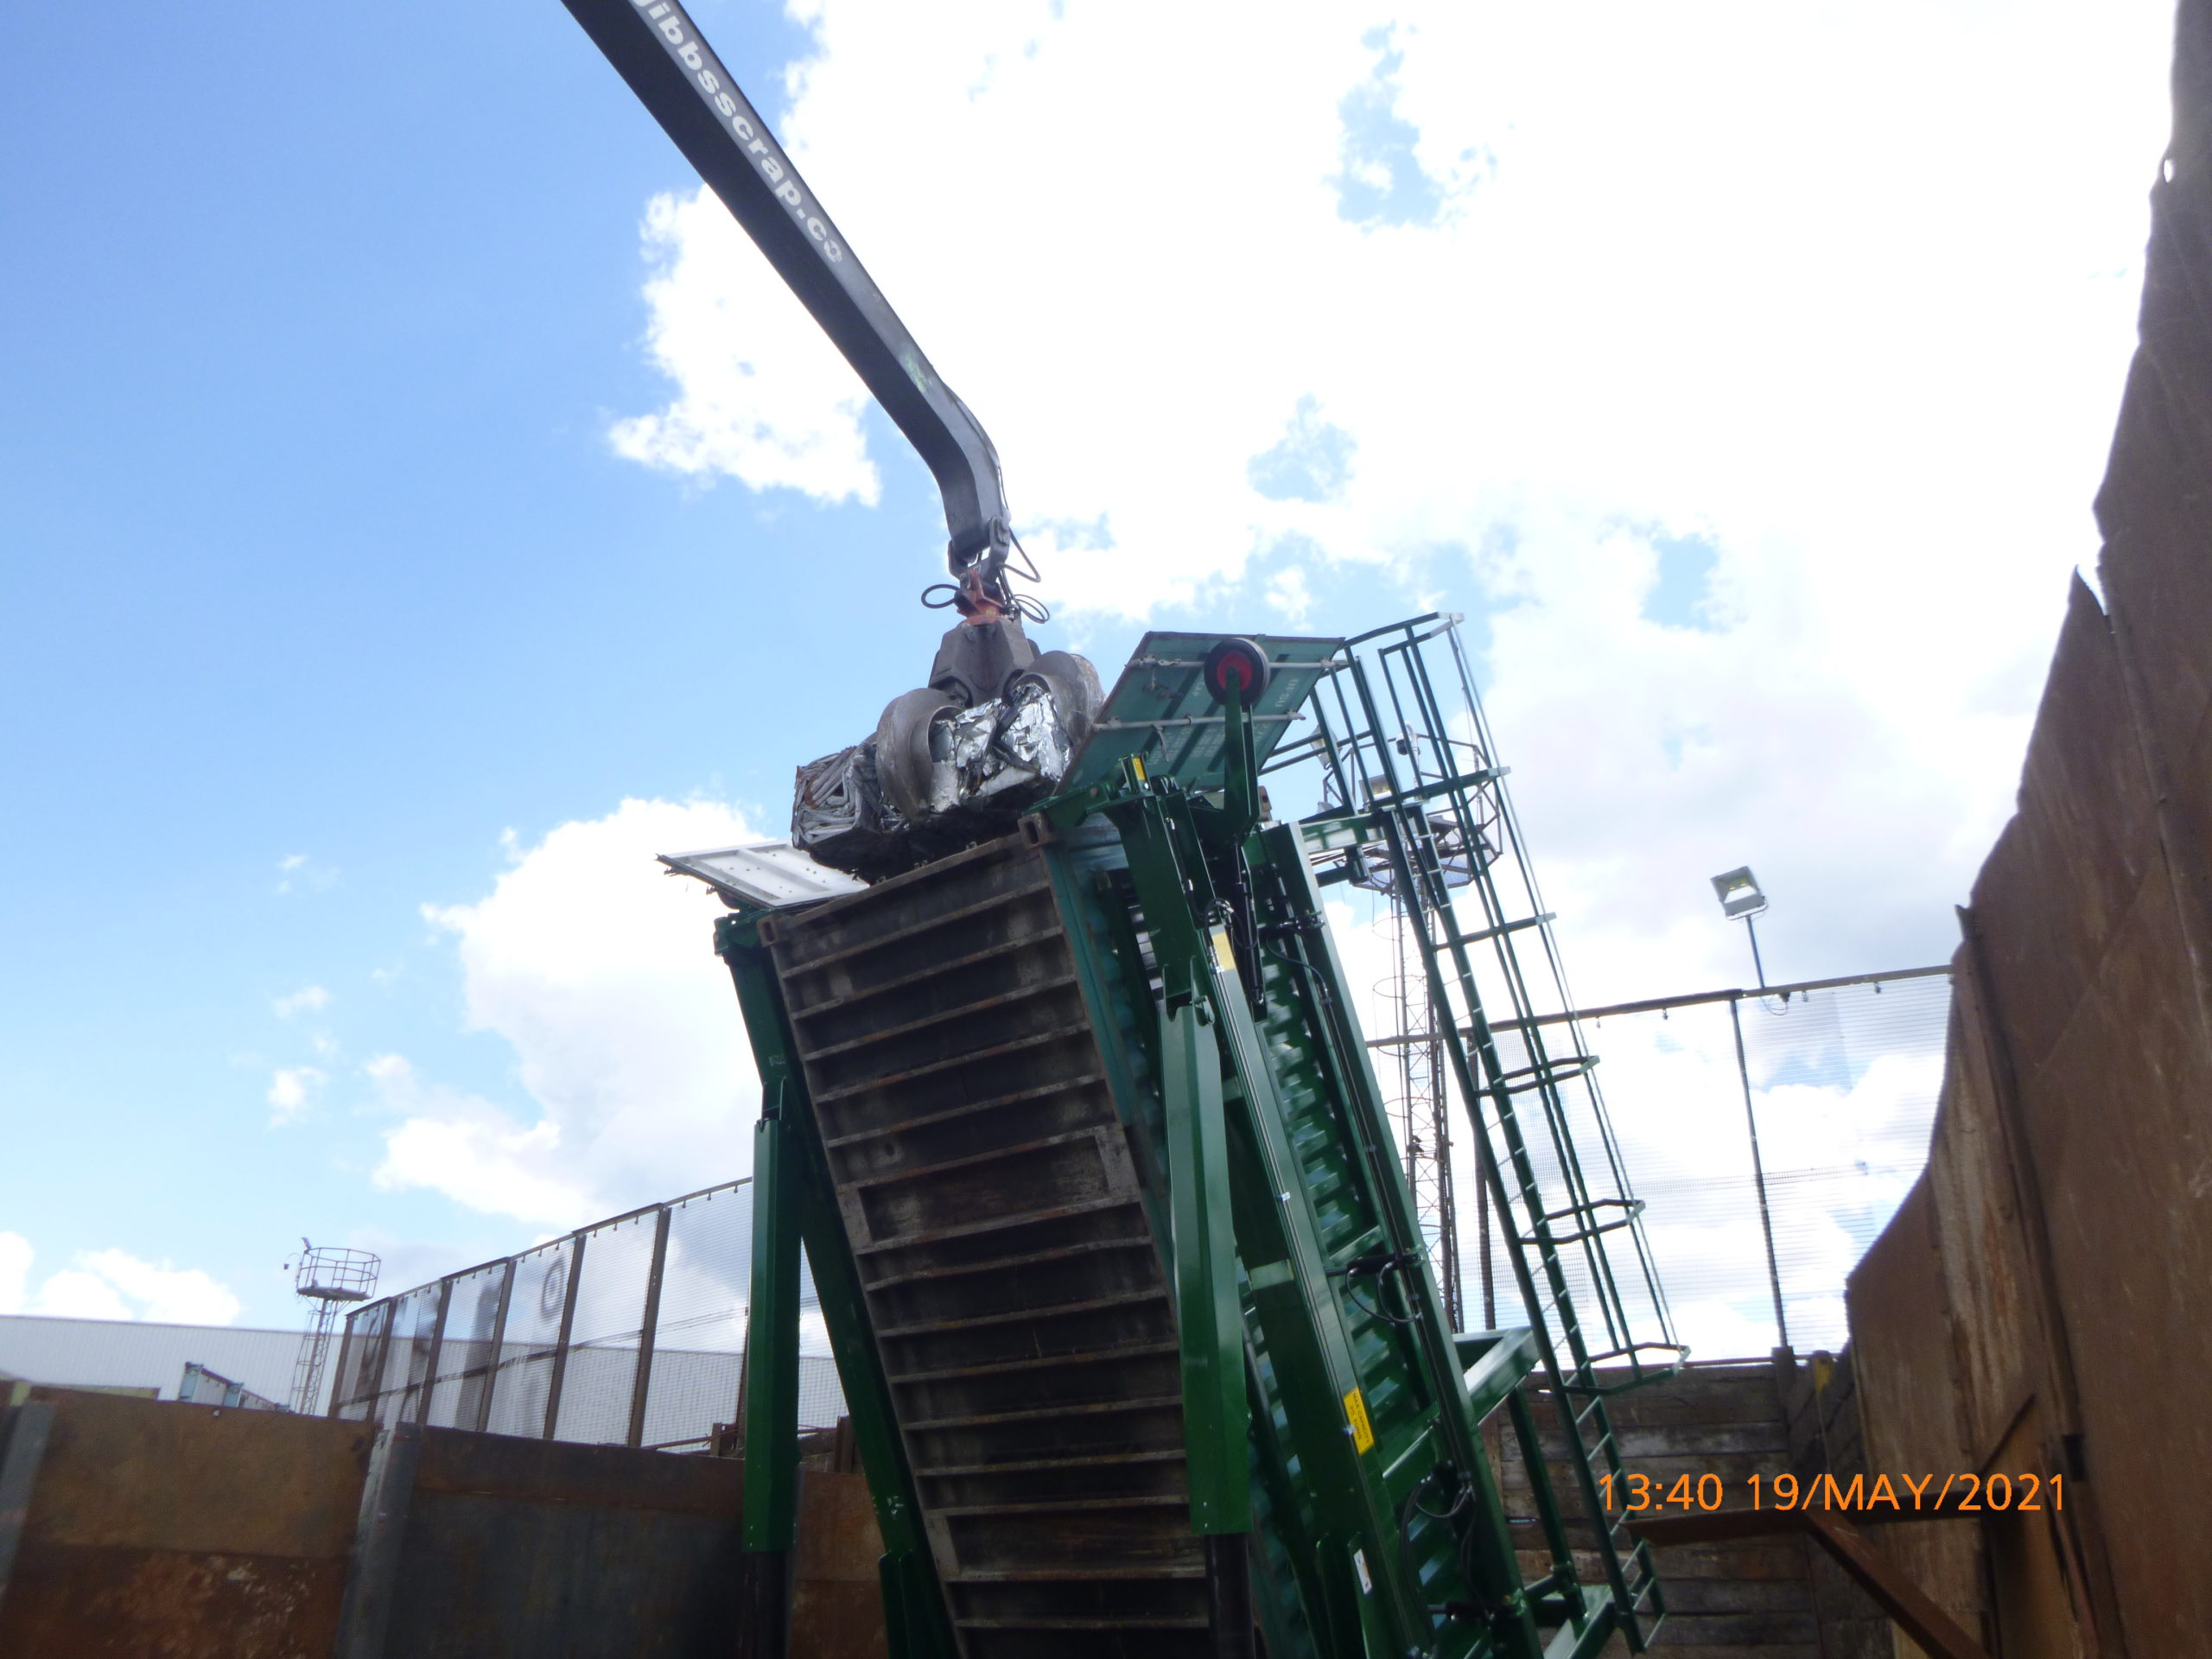 The Loading of a container with scrap metal.